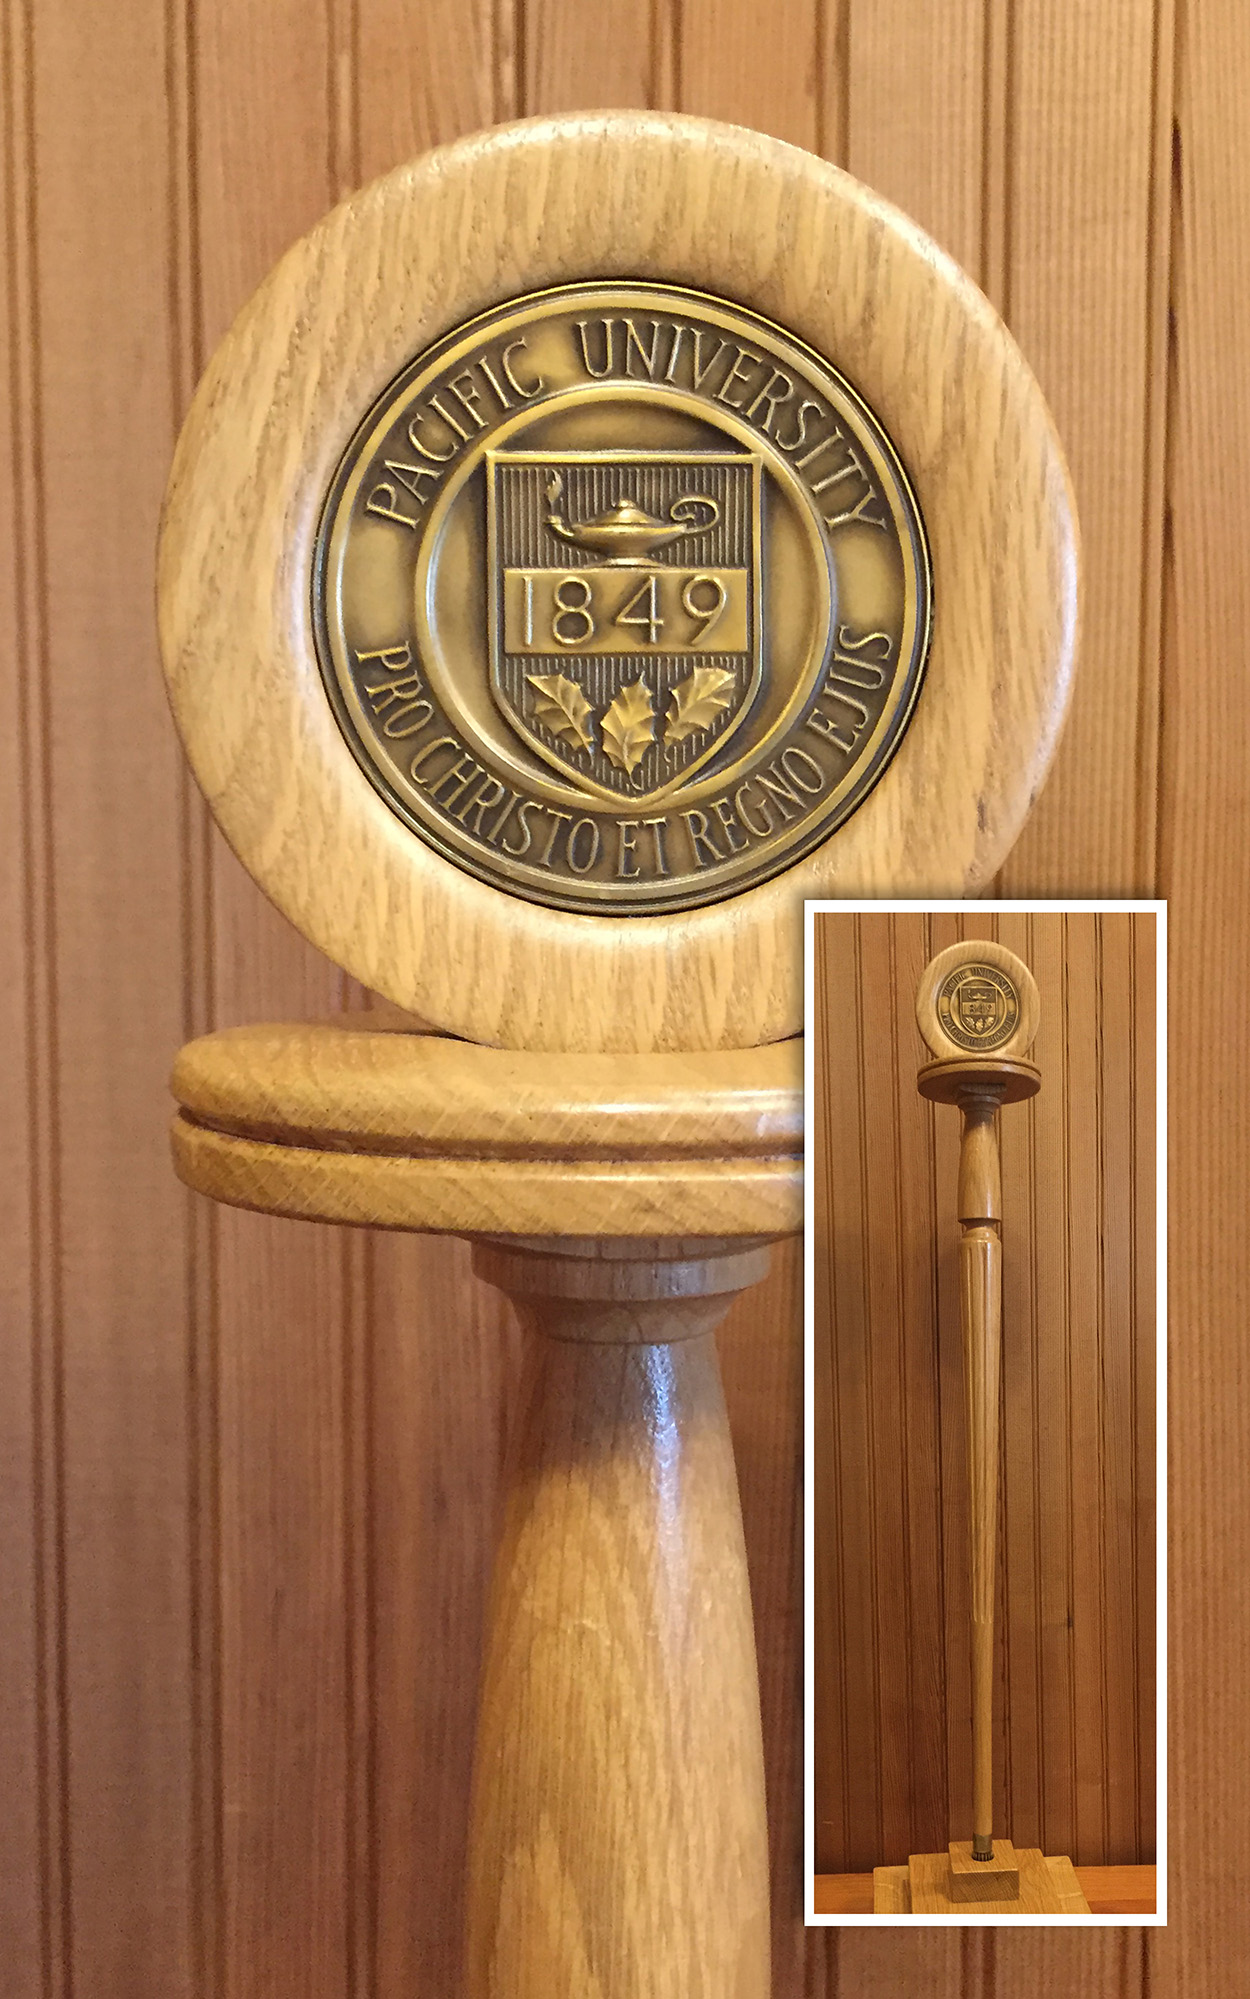 Wooden staff with a brass university seal topper